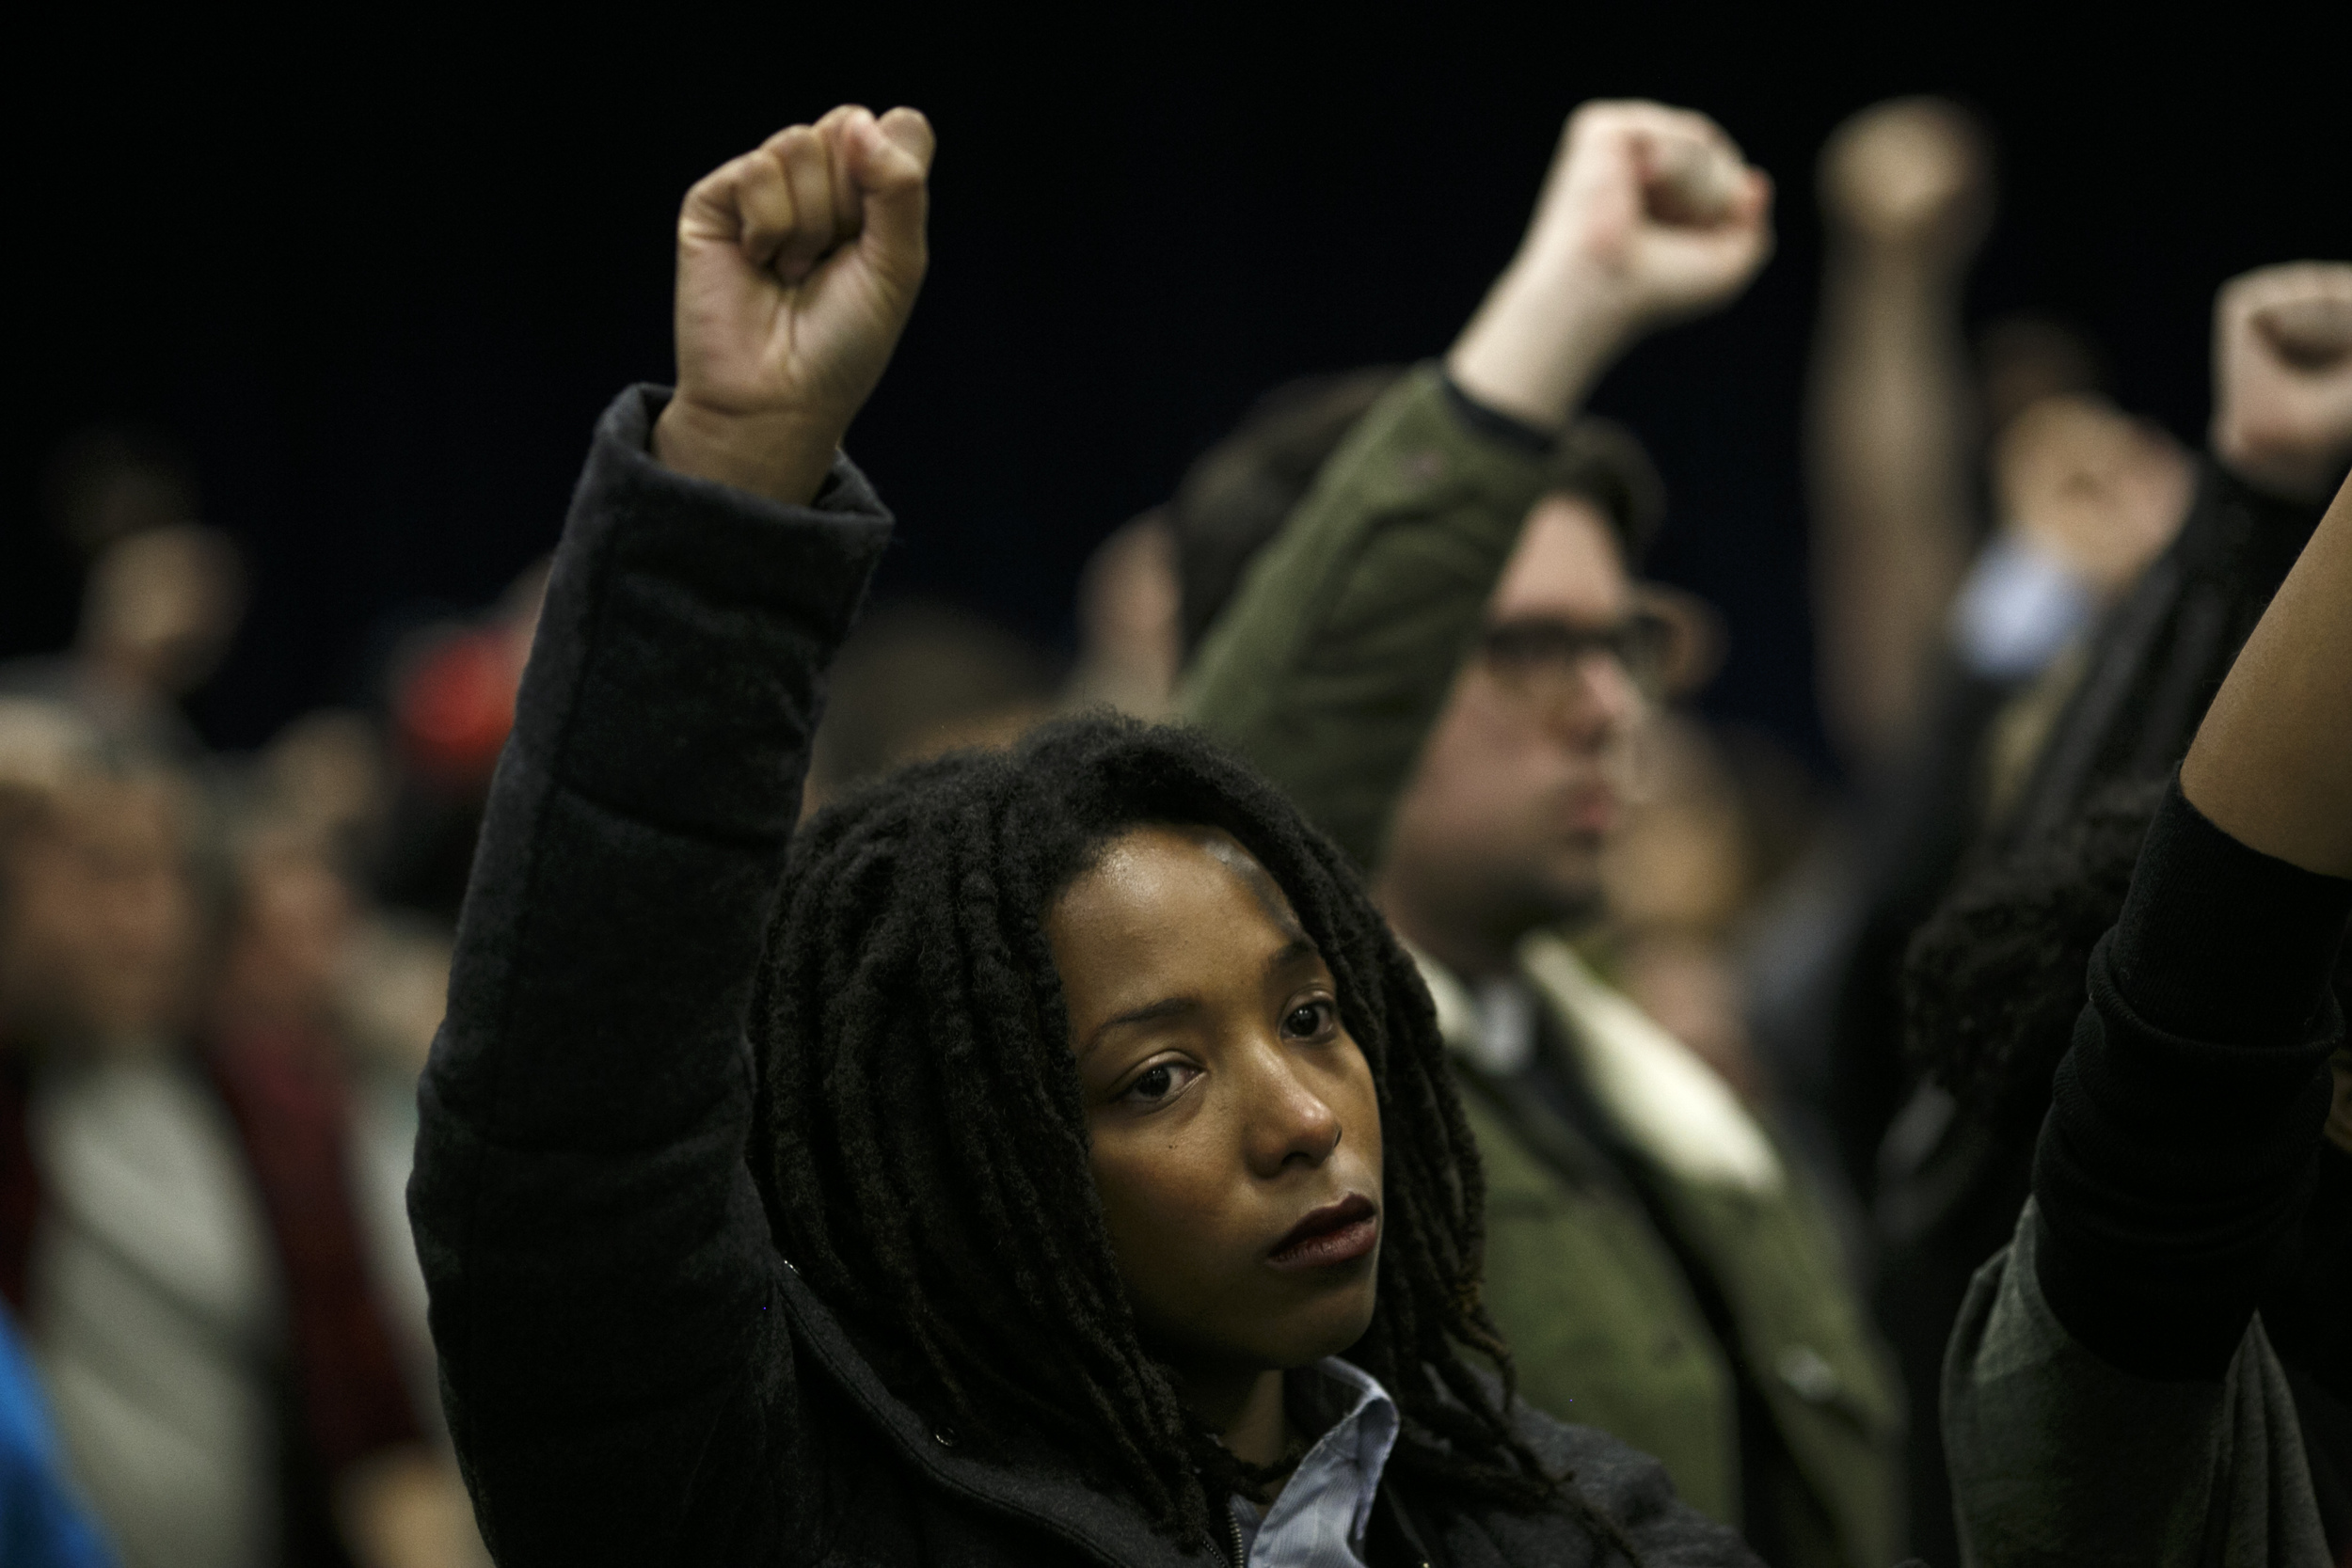 Attendees raise their fists in protest during the November Police Board Meeting at the Chicago Public Safety Headquarters on November 19, 2015 (Jonathan Gibby/City Bureau)